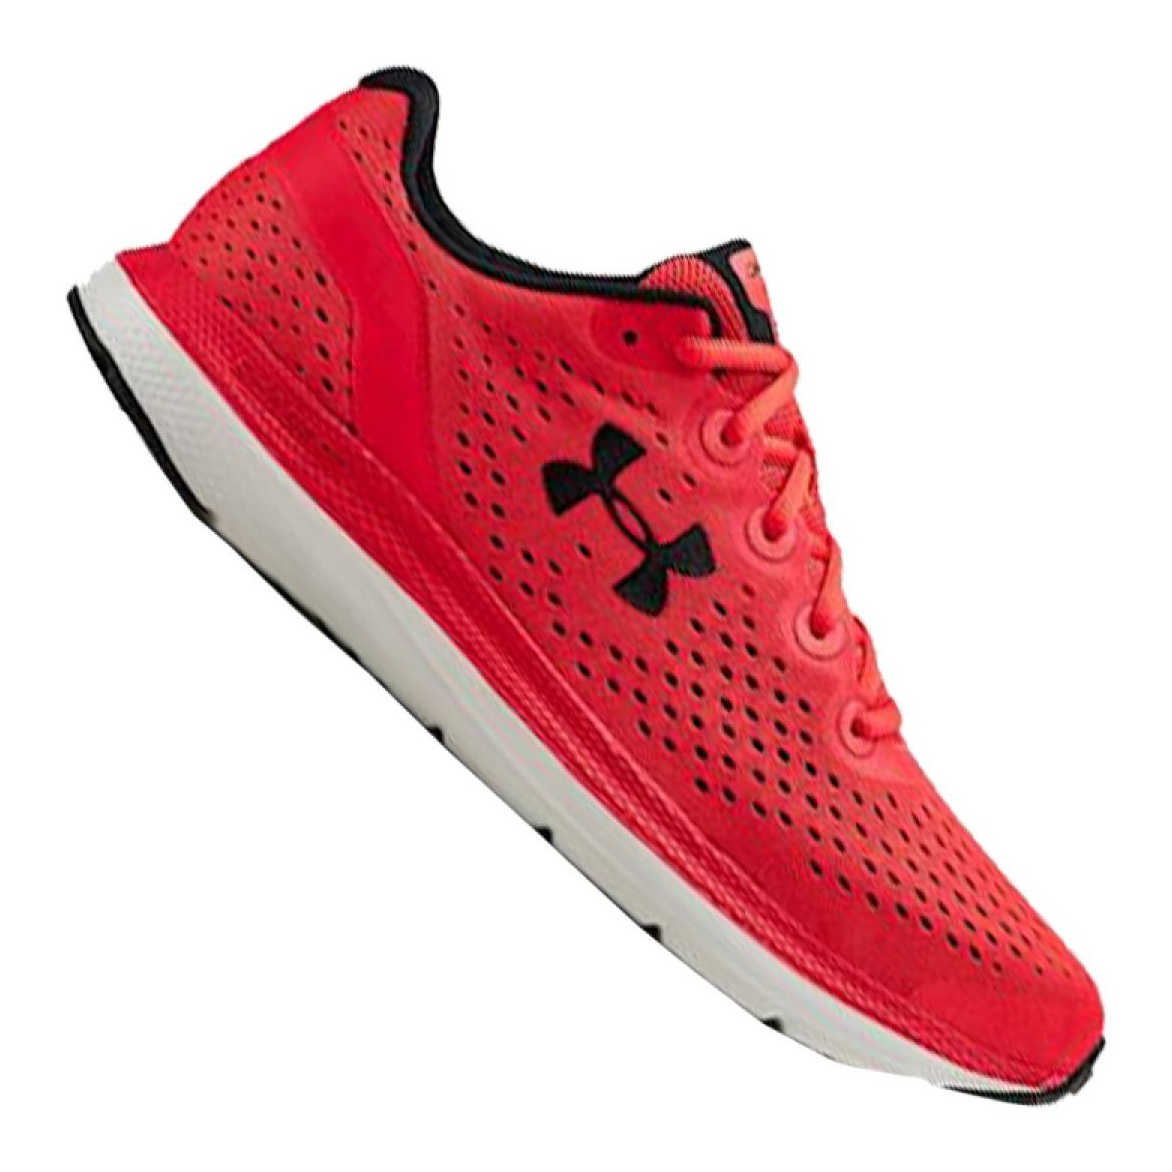 Under Armour Under Armor Charged